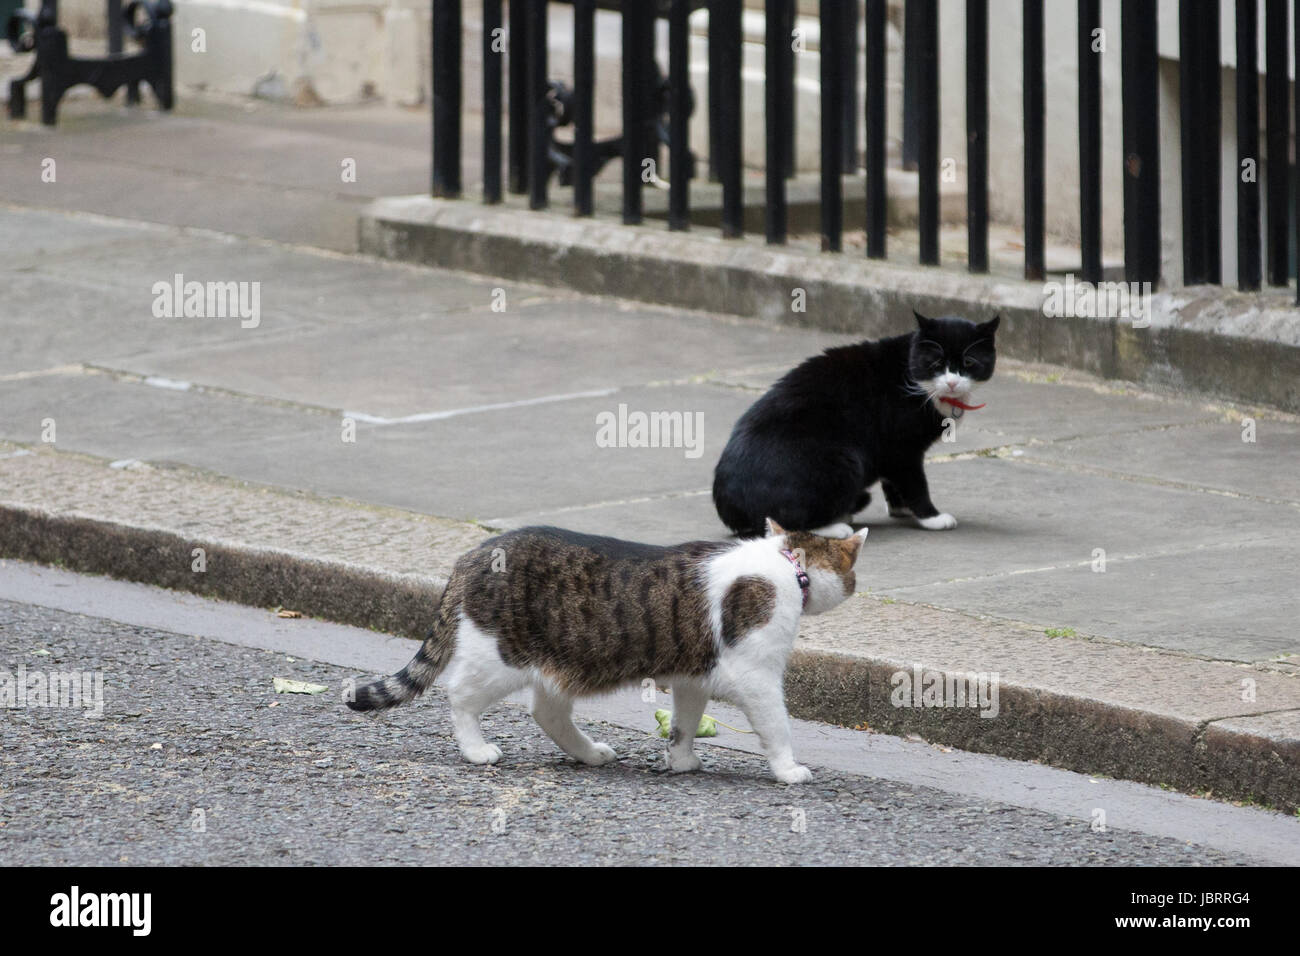 London, UK. 12th June, 2017. A tense standoff between Larry, Chief Mouser at 10 Downing Street, and Palmerston, - Stock Image